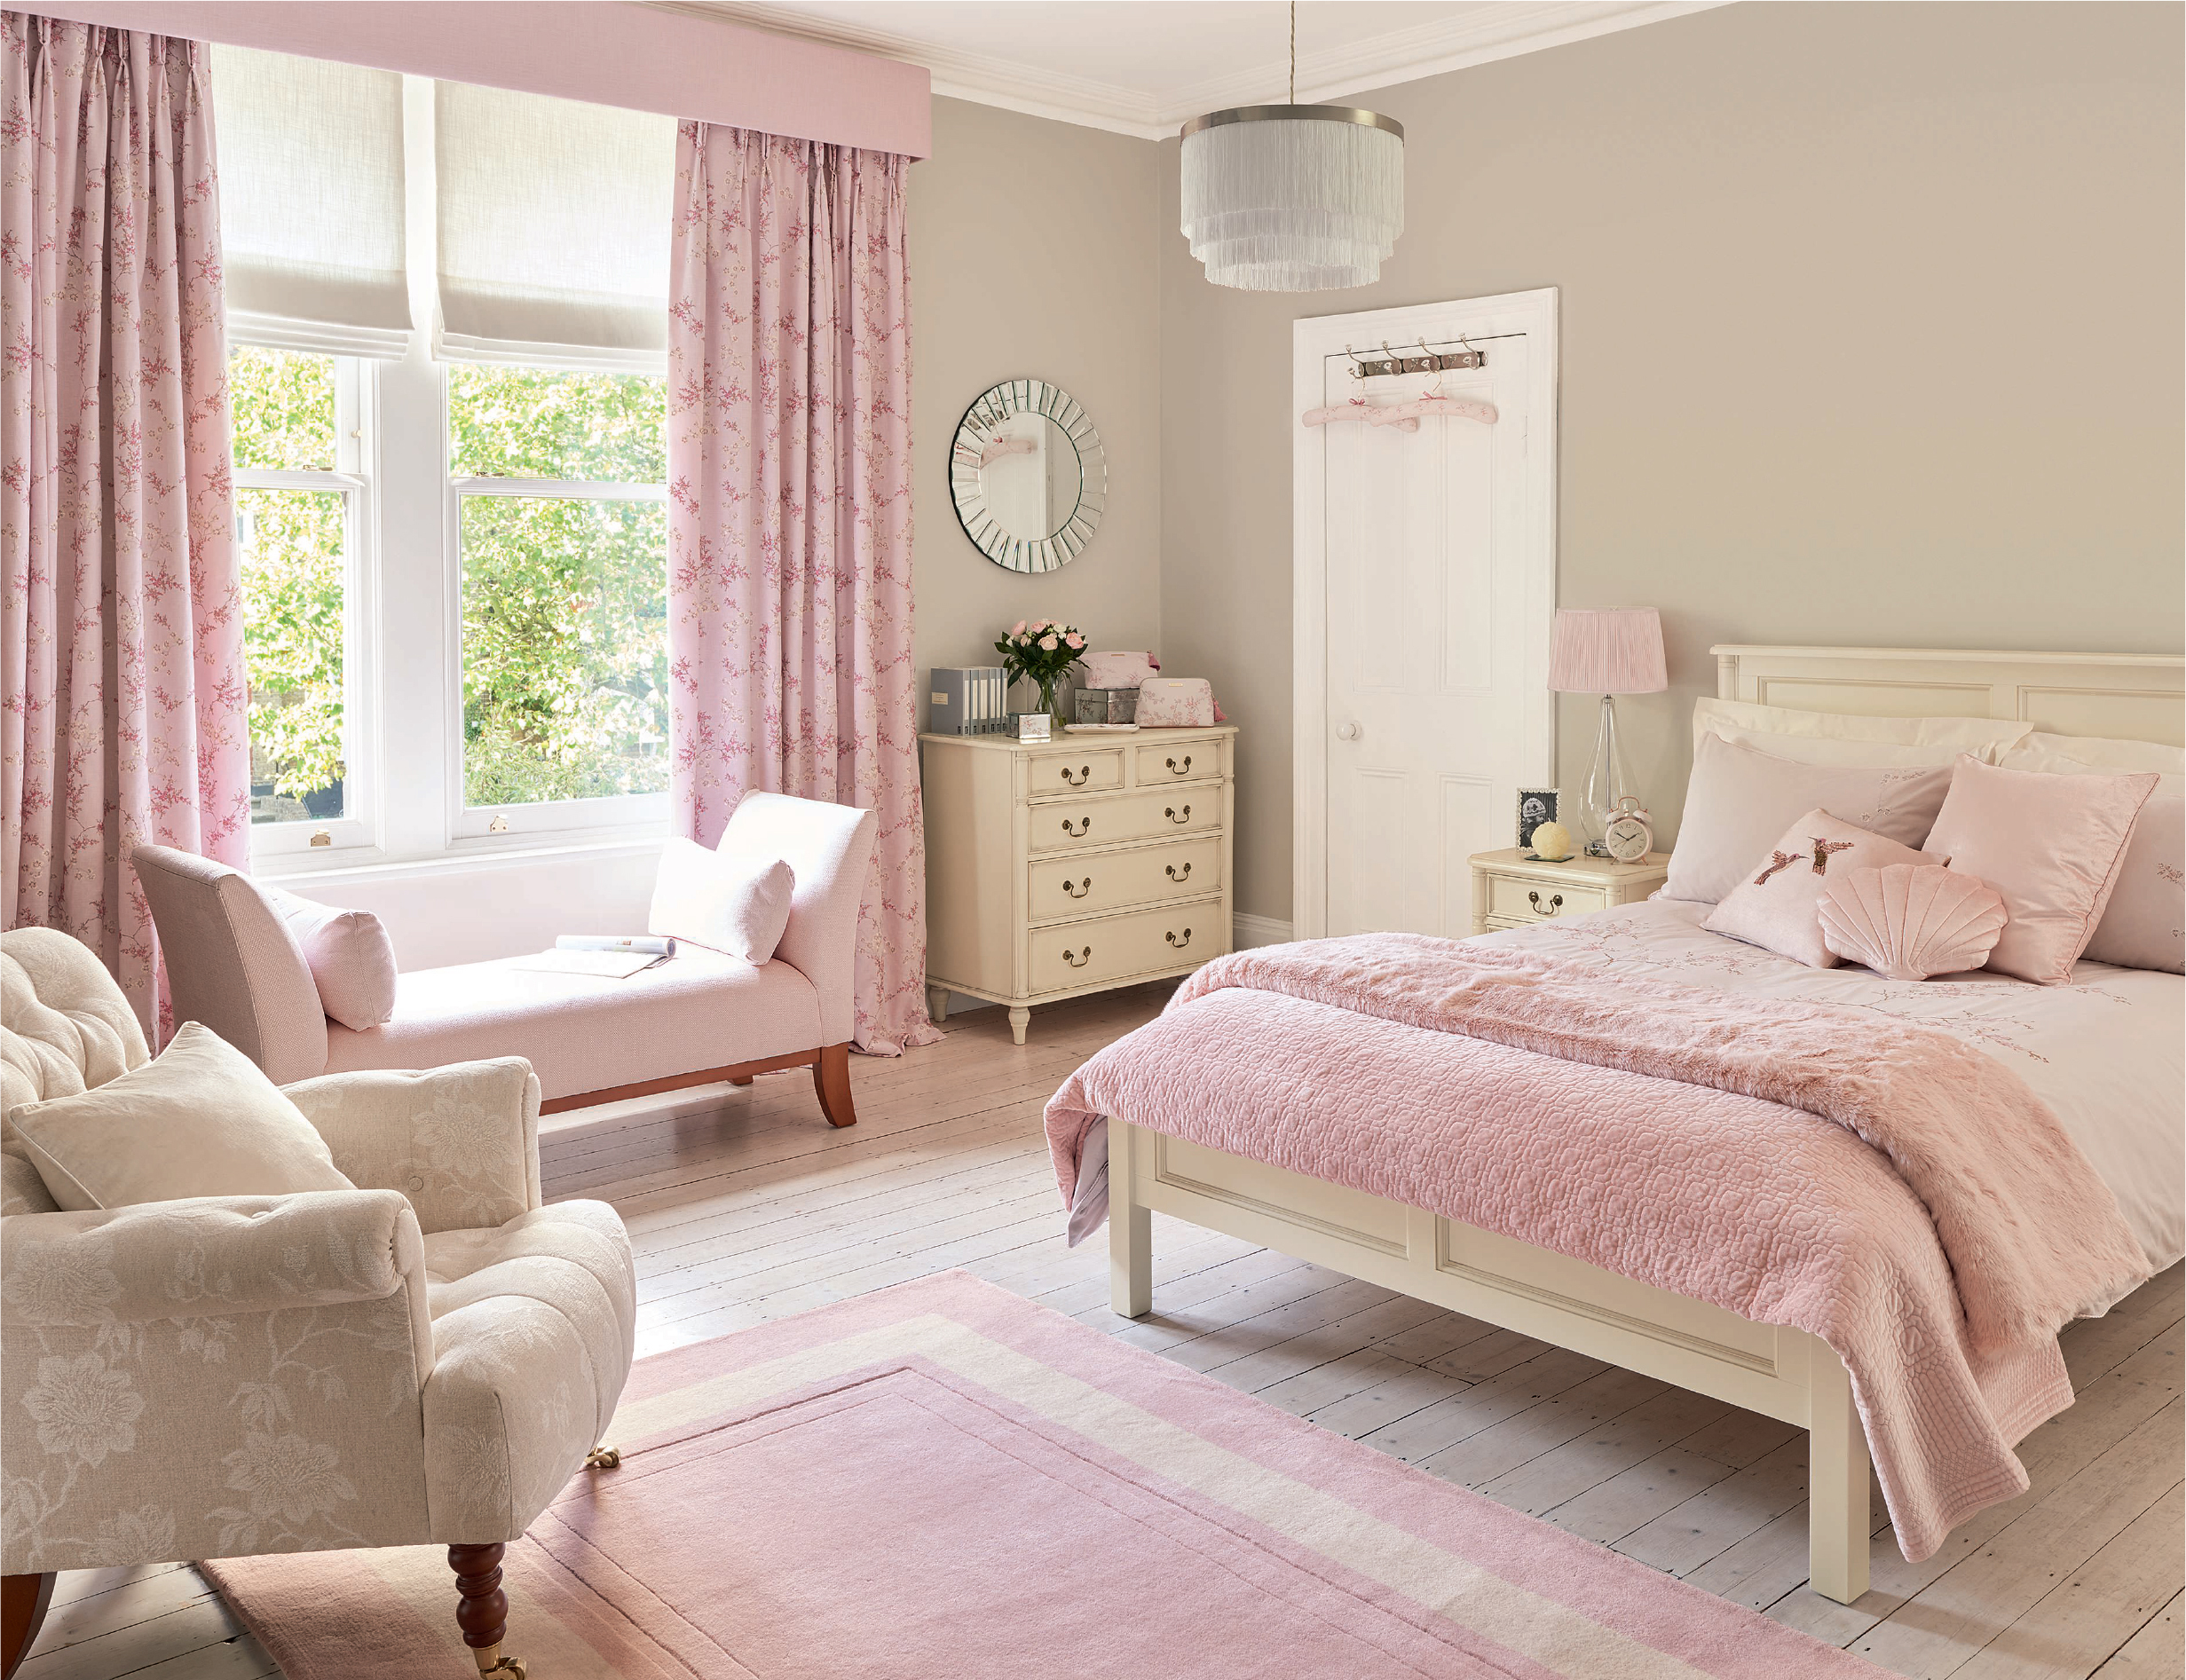 Beautiful Bedroom Decorating Ideas - Laura Ashley Blog